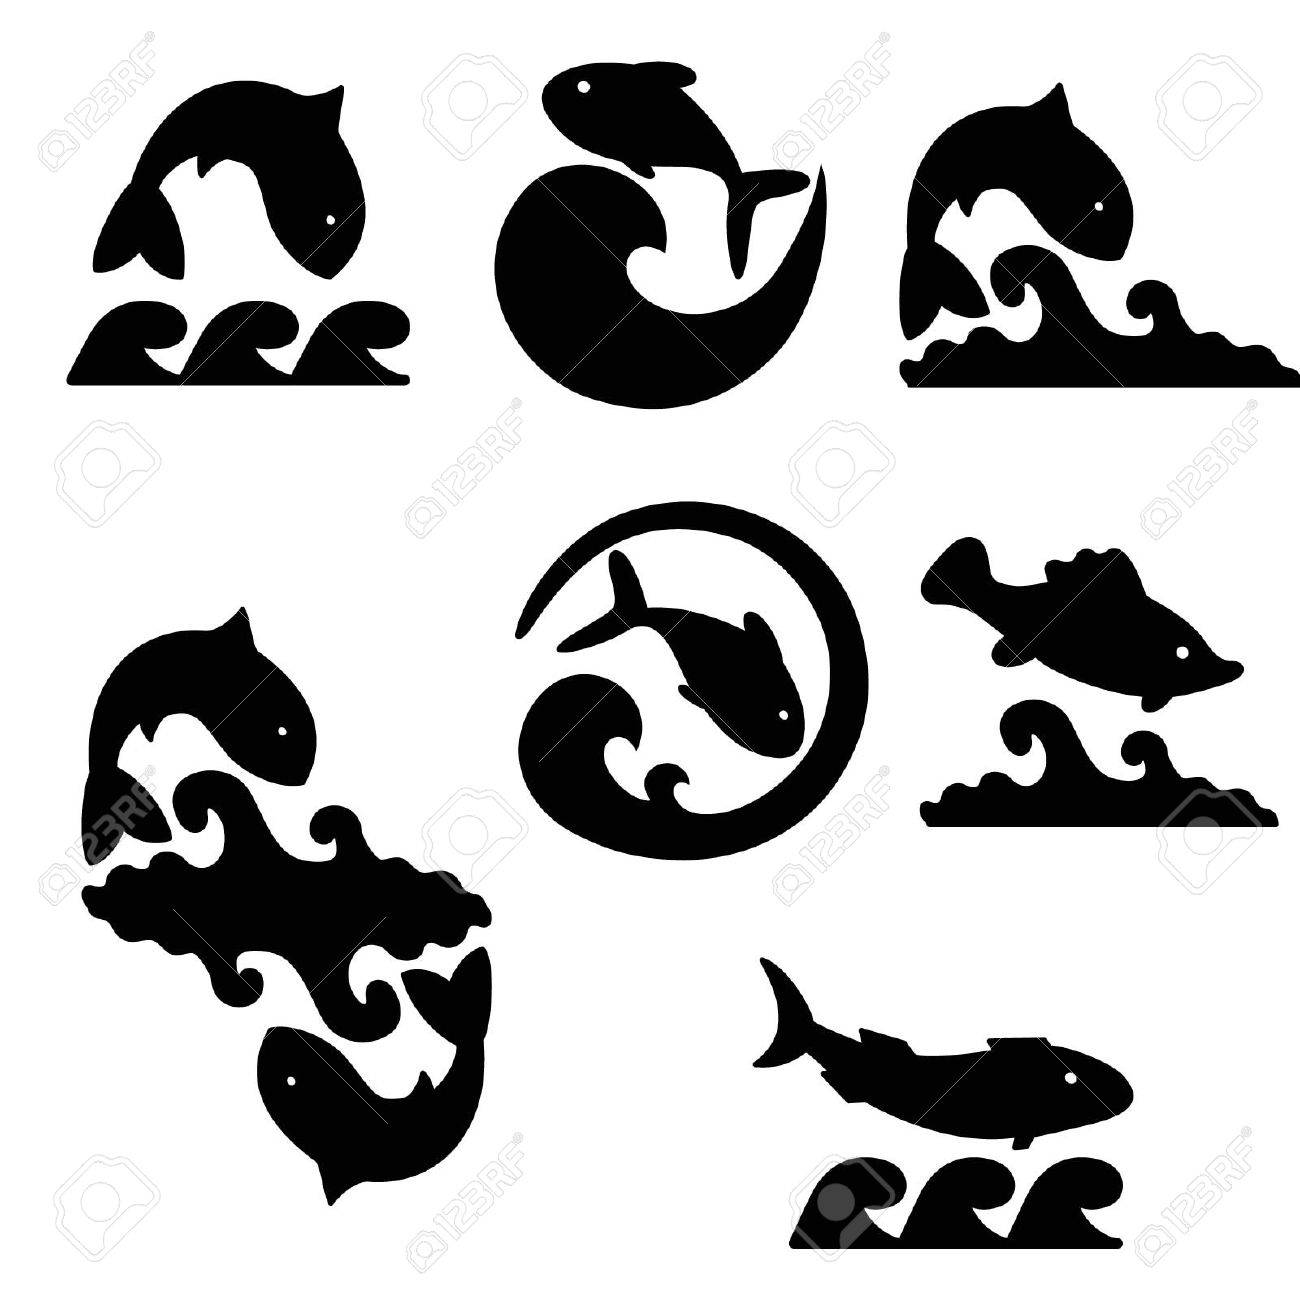 Sketches of fish and waves on a white background Stock Vector - 13594703